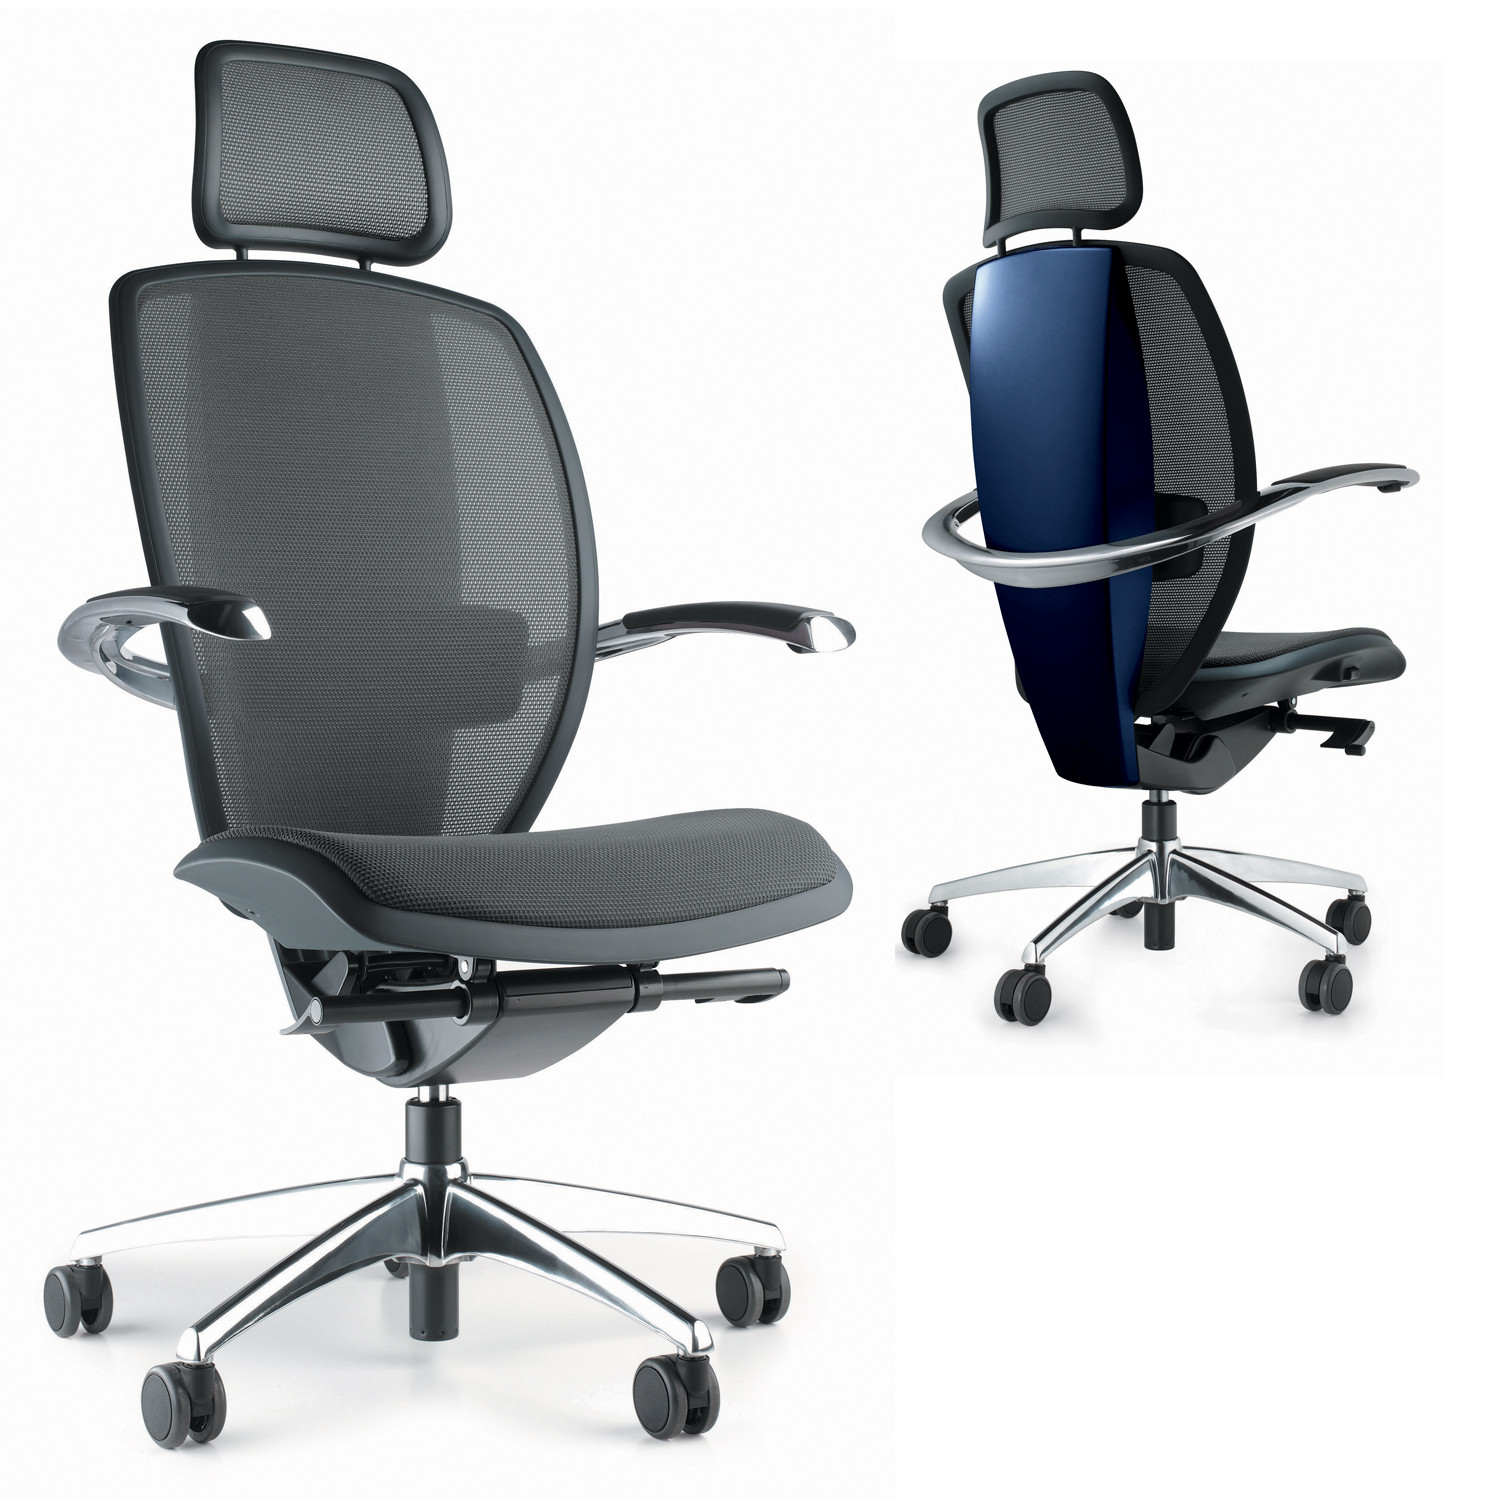 Xtem Office Chairs with headrest